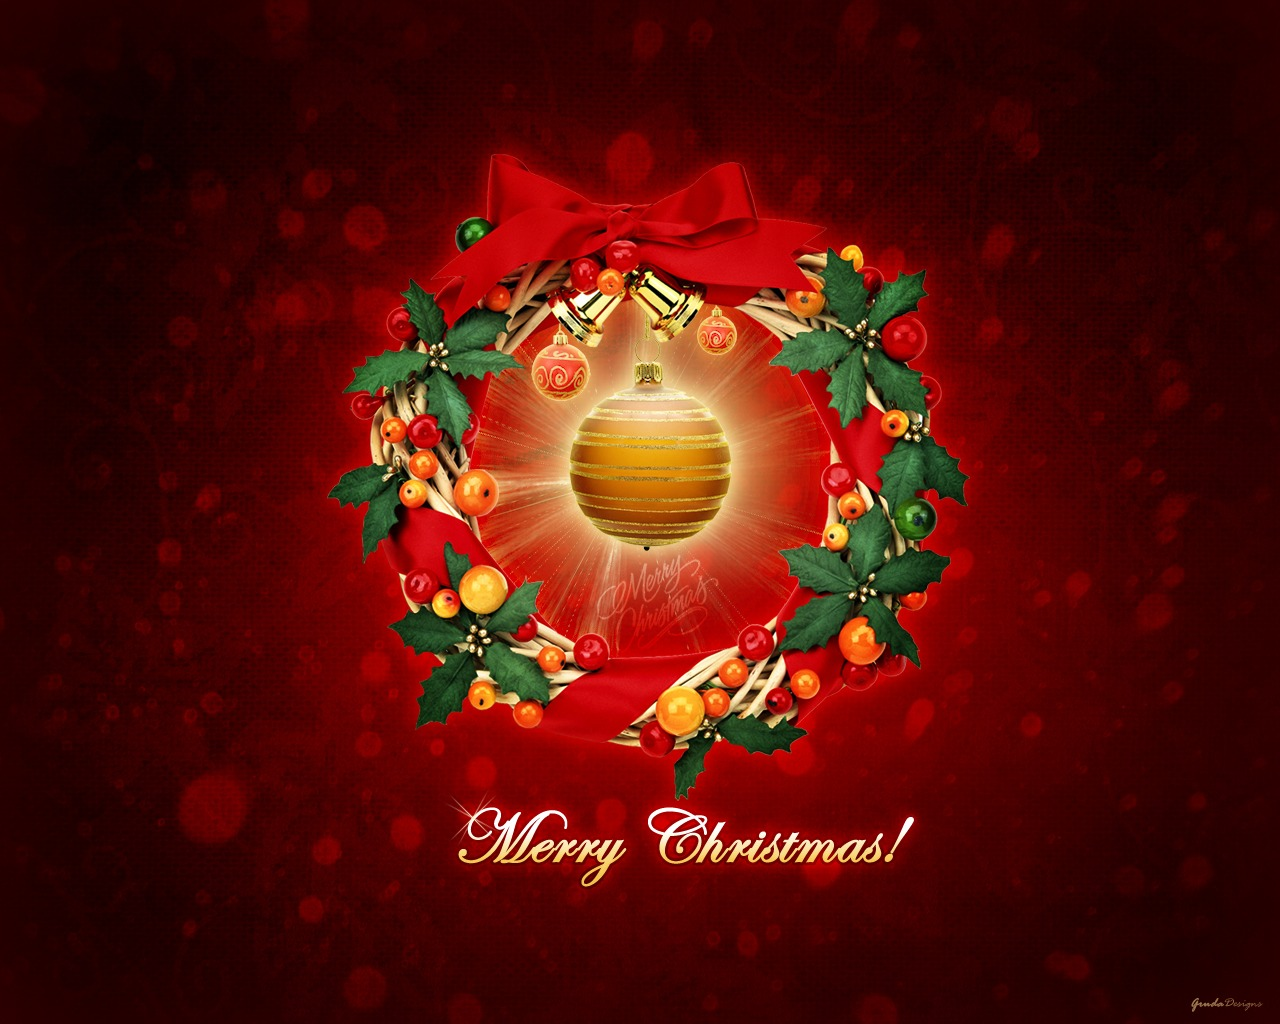 Christmas wallpapers and images and photos christmas - Christmas wallpaper hd for desktop ...